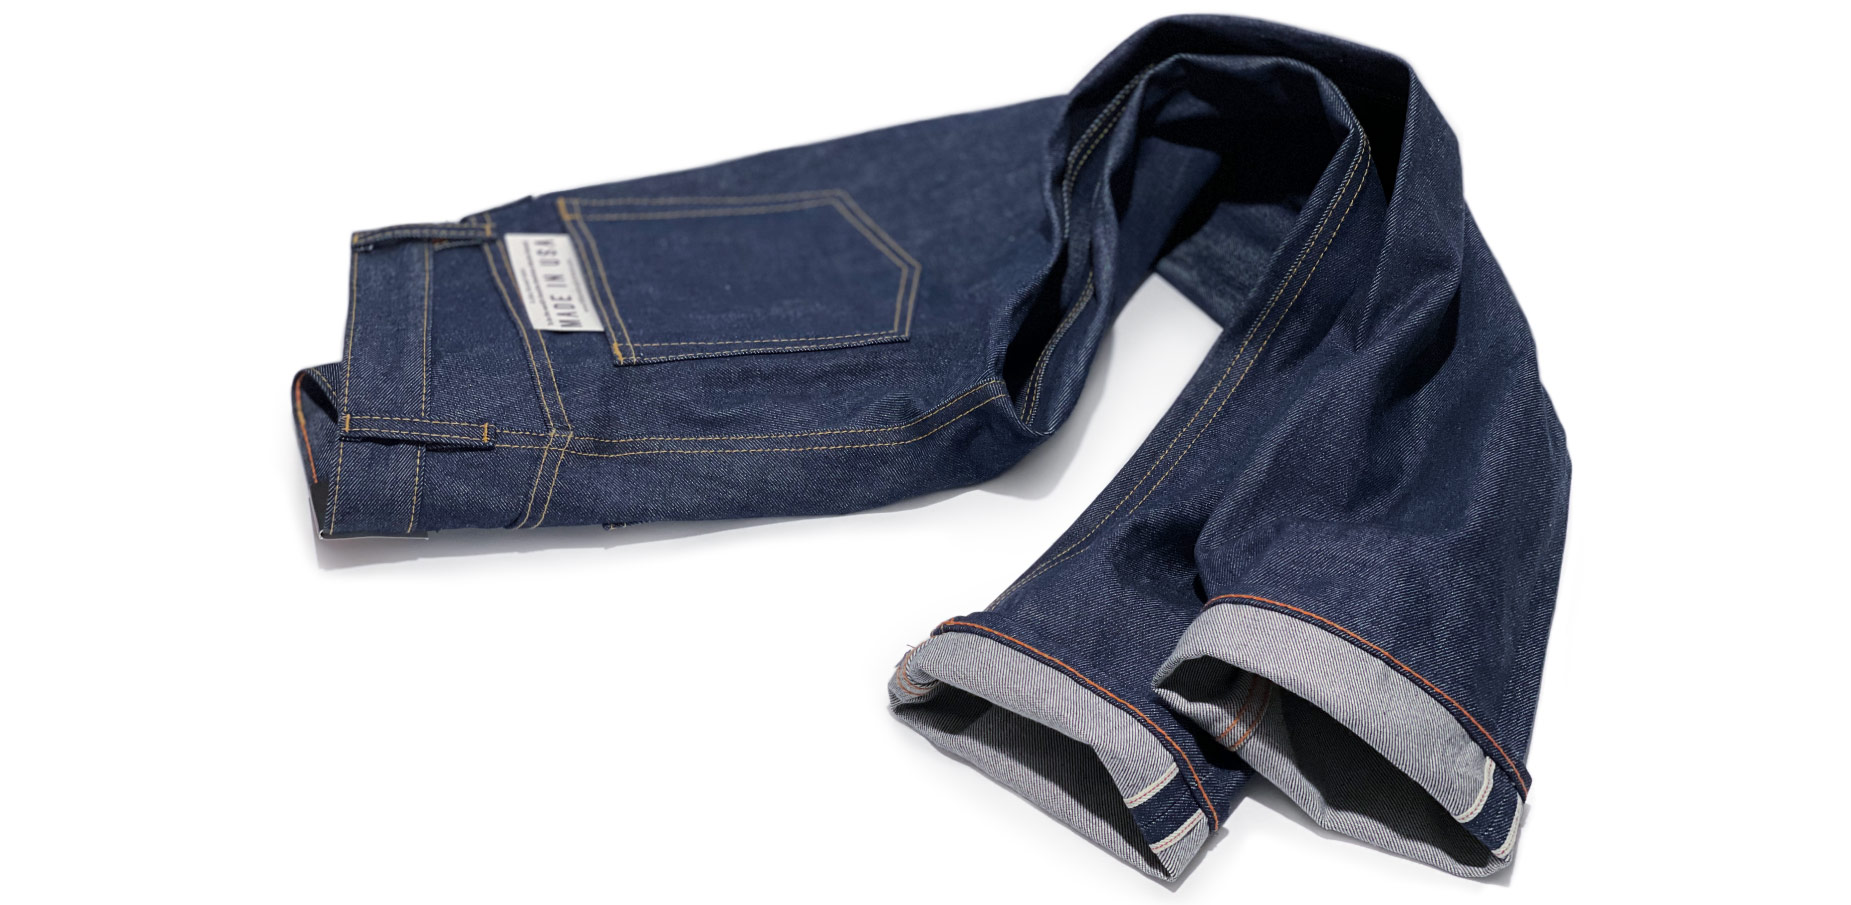 Men's American made jeans produced in Cone White Oak selvedge raw denim made in the USA